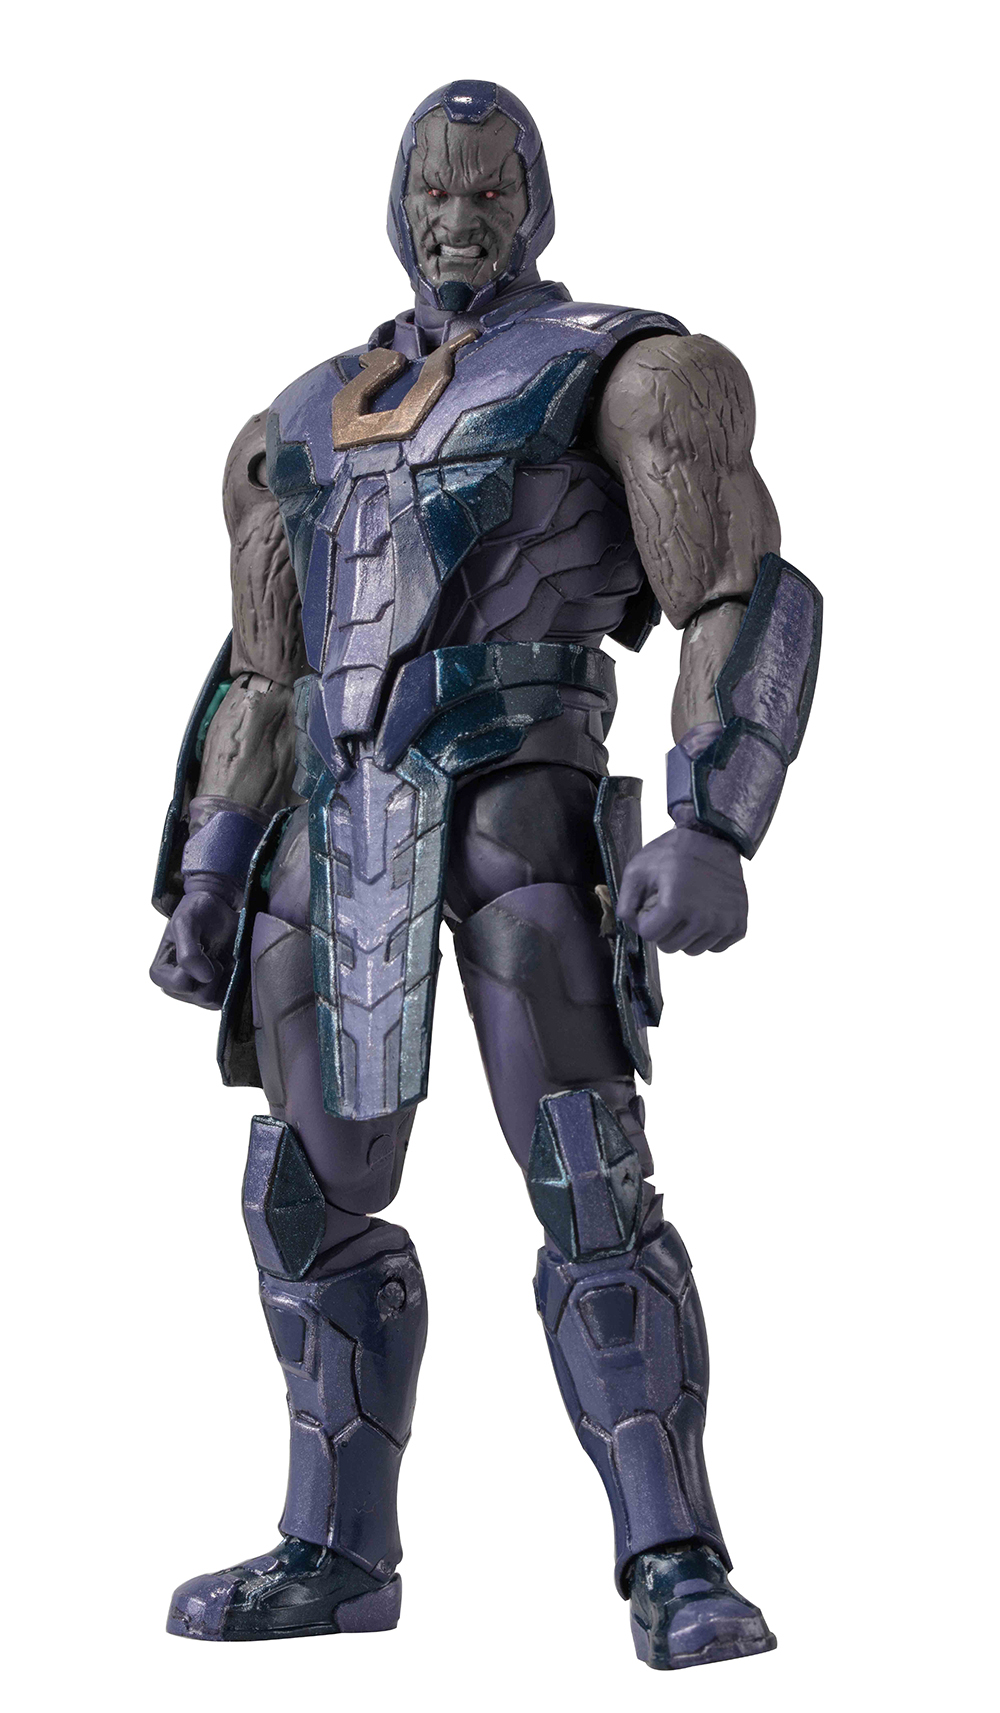 INJUSTICE 2 DARKSEID PX 1/18 SCALE FIG (FEB199033)